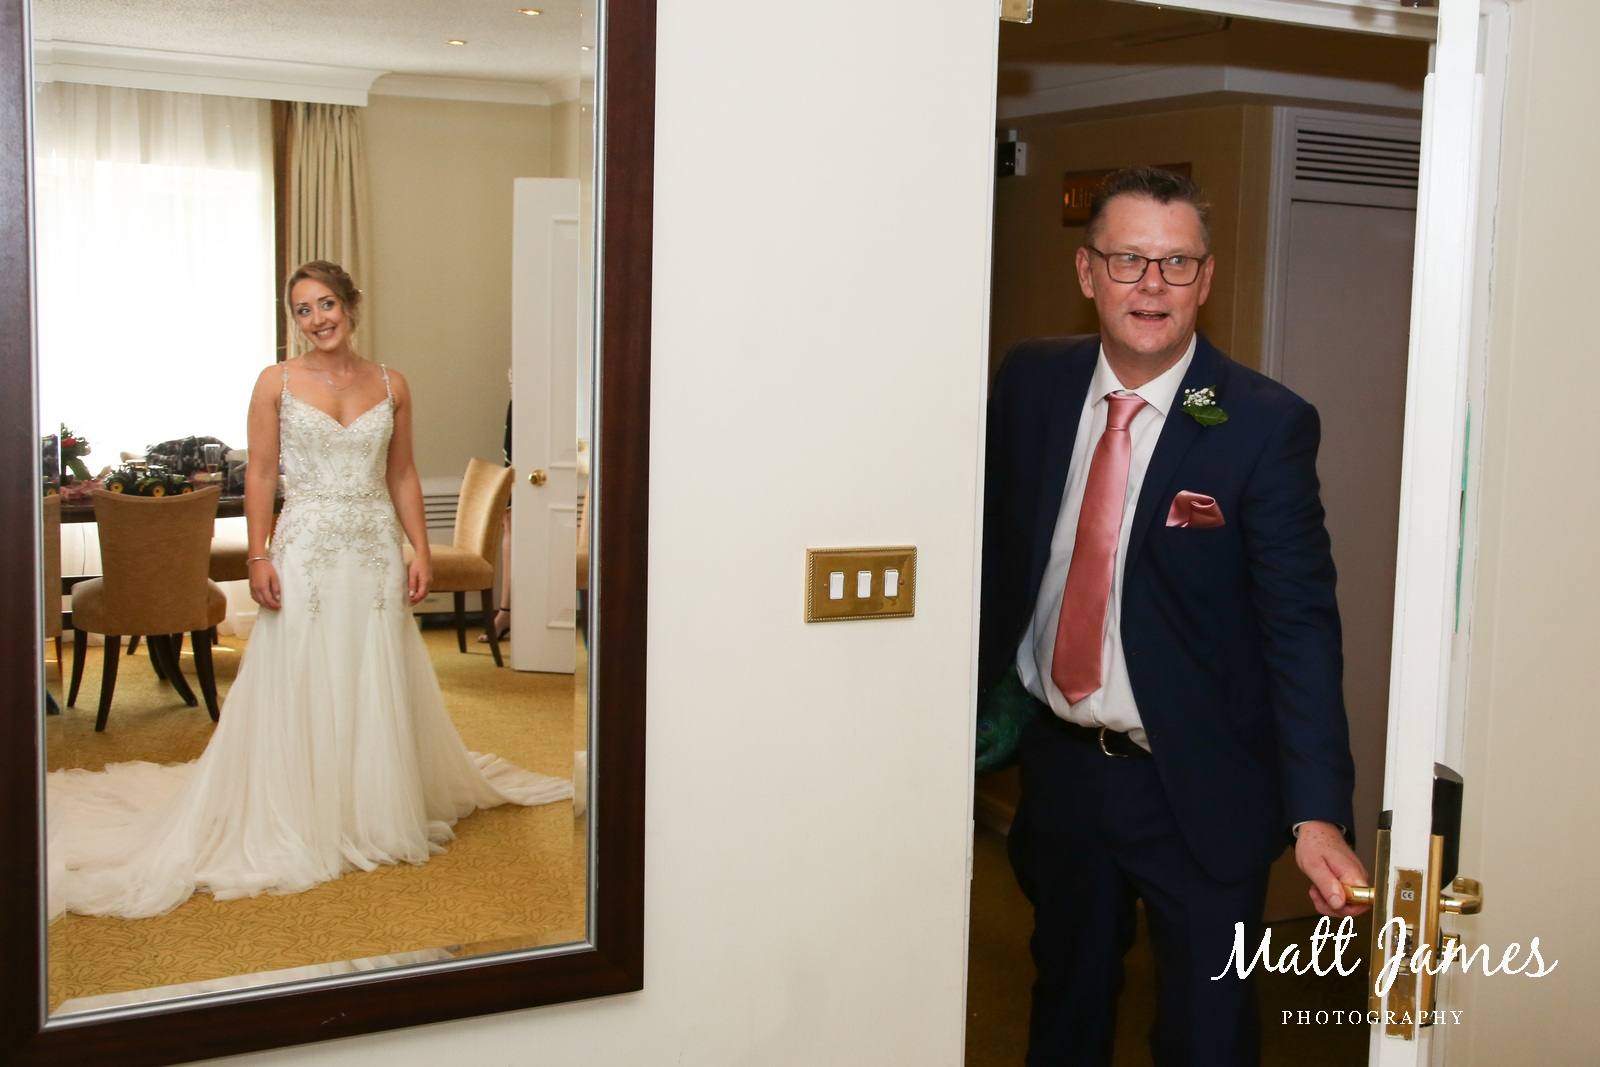 Matt-James-Photography-Wedding-photographer19